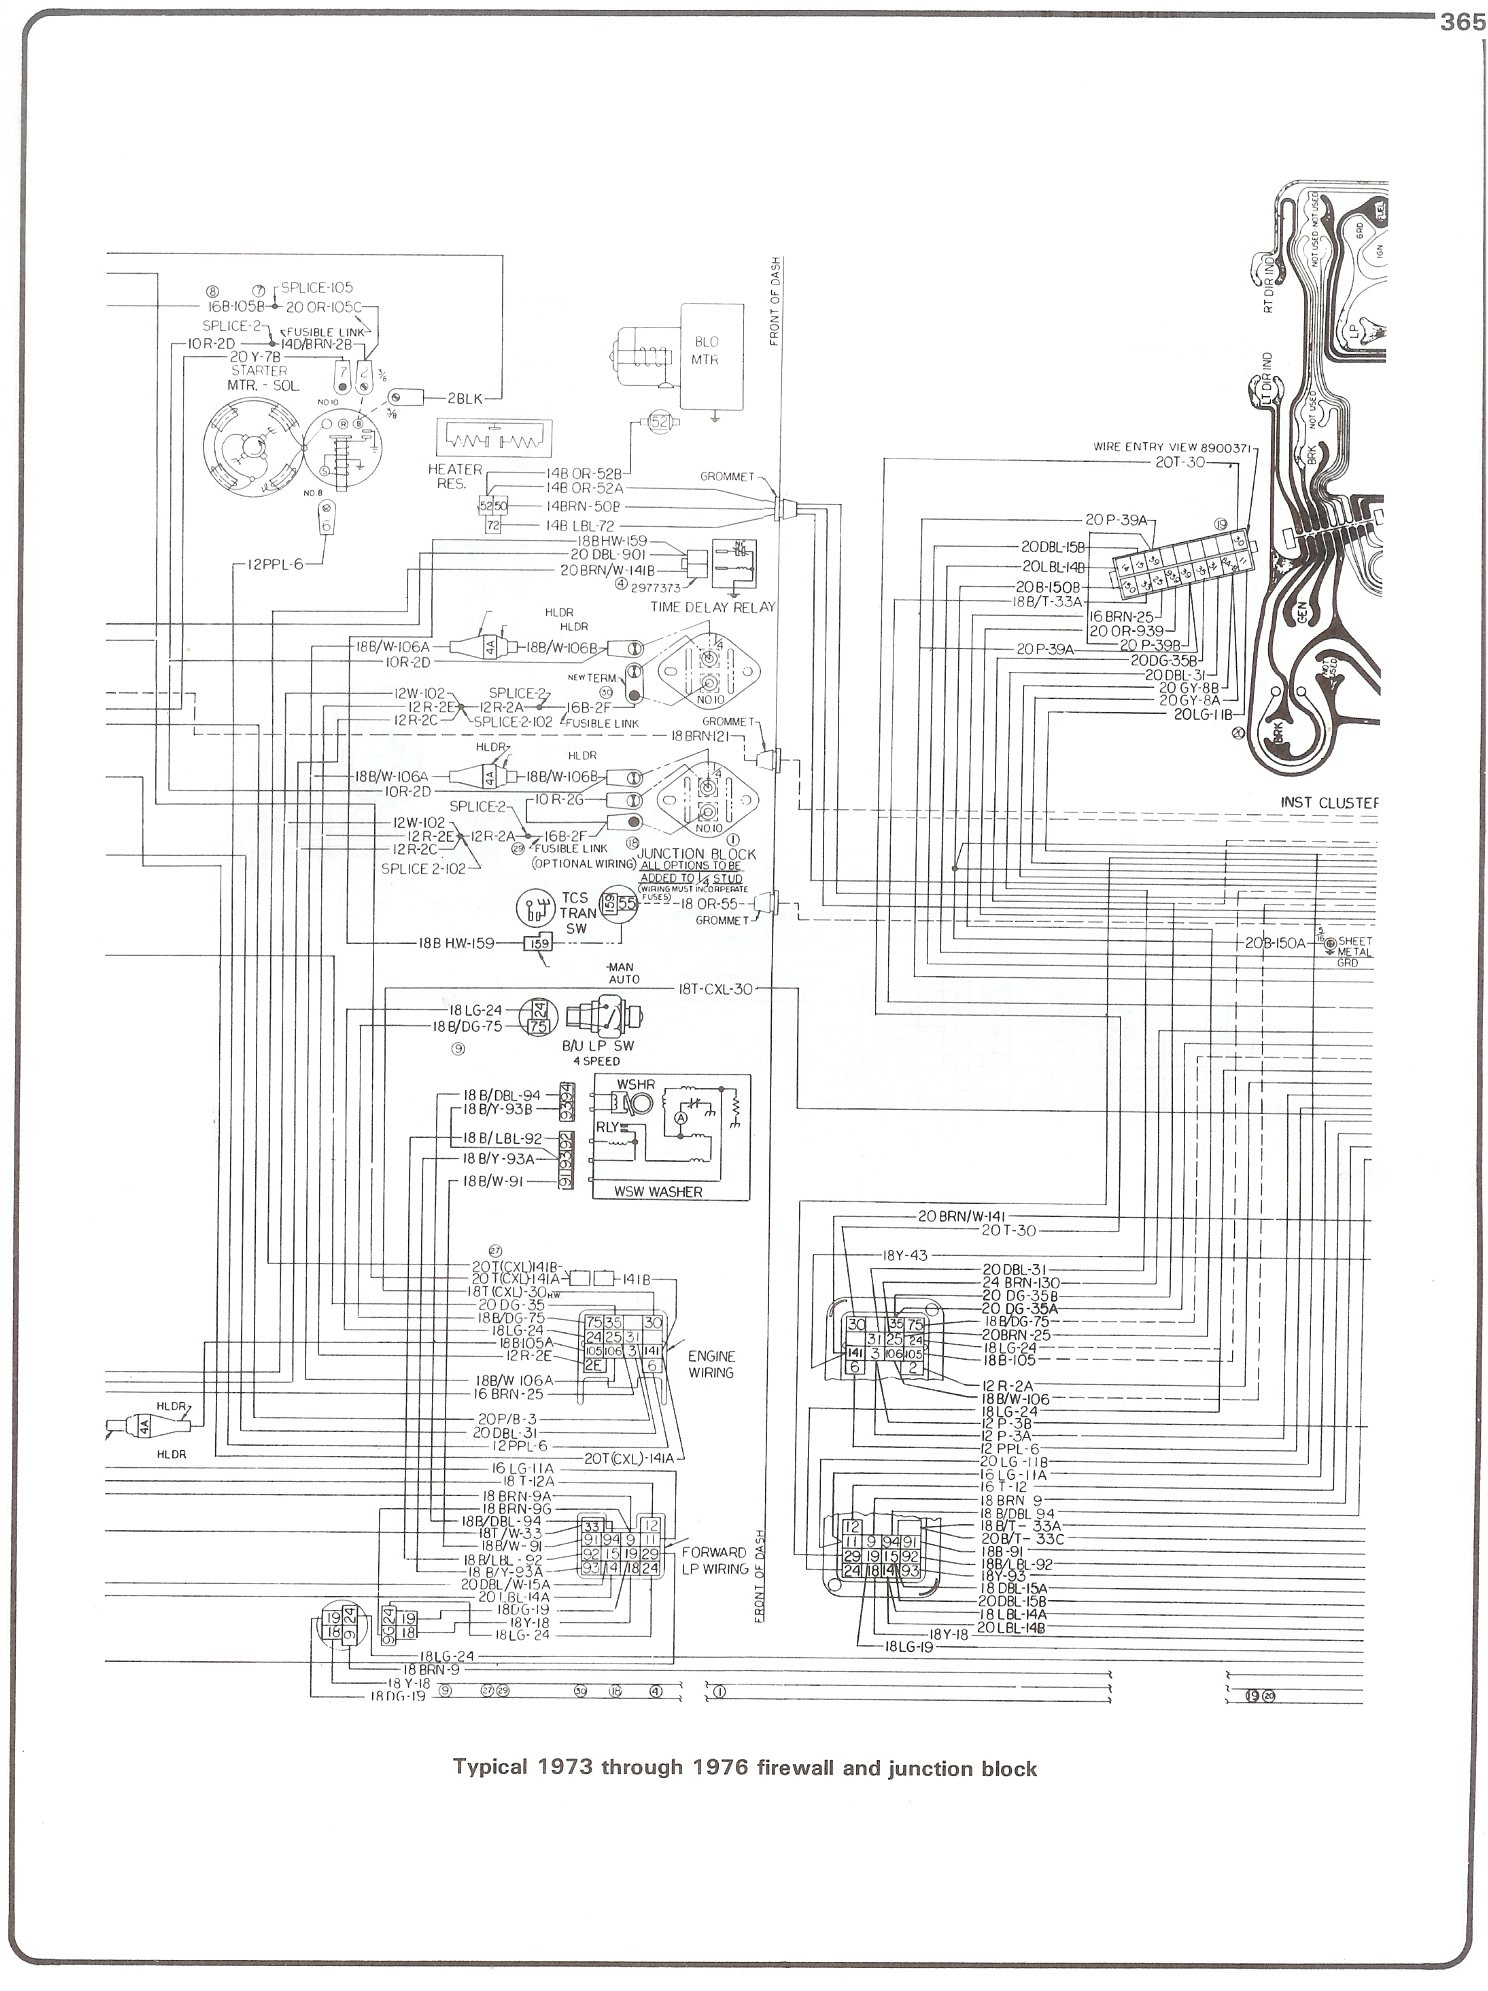 1980 chevy luv truck trailer wiring diagram all kind of